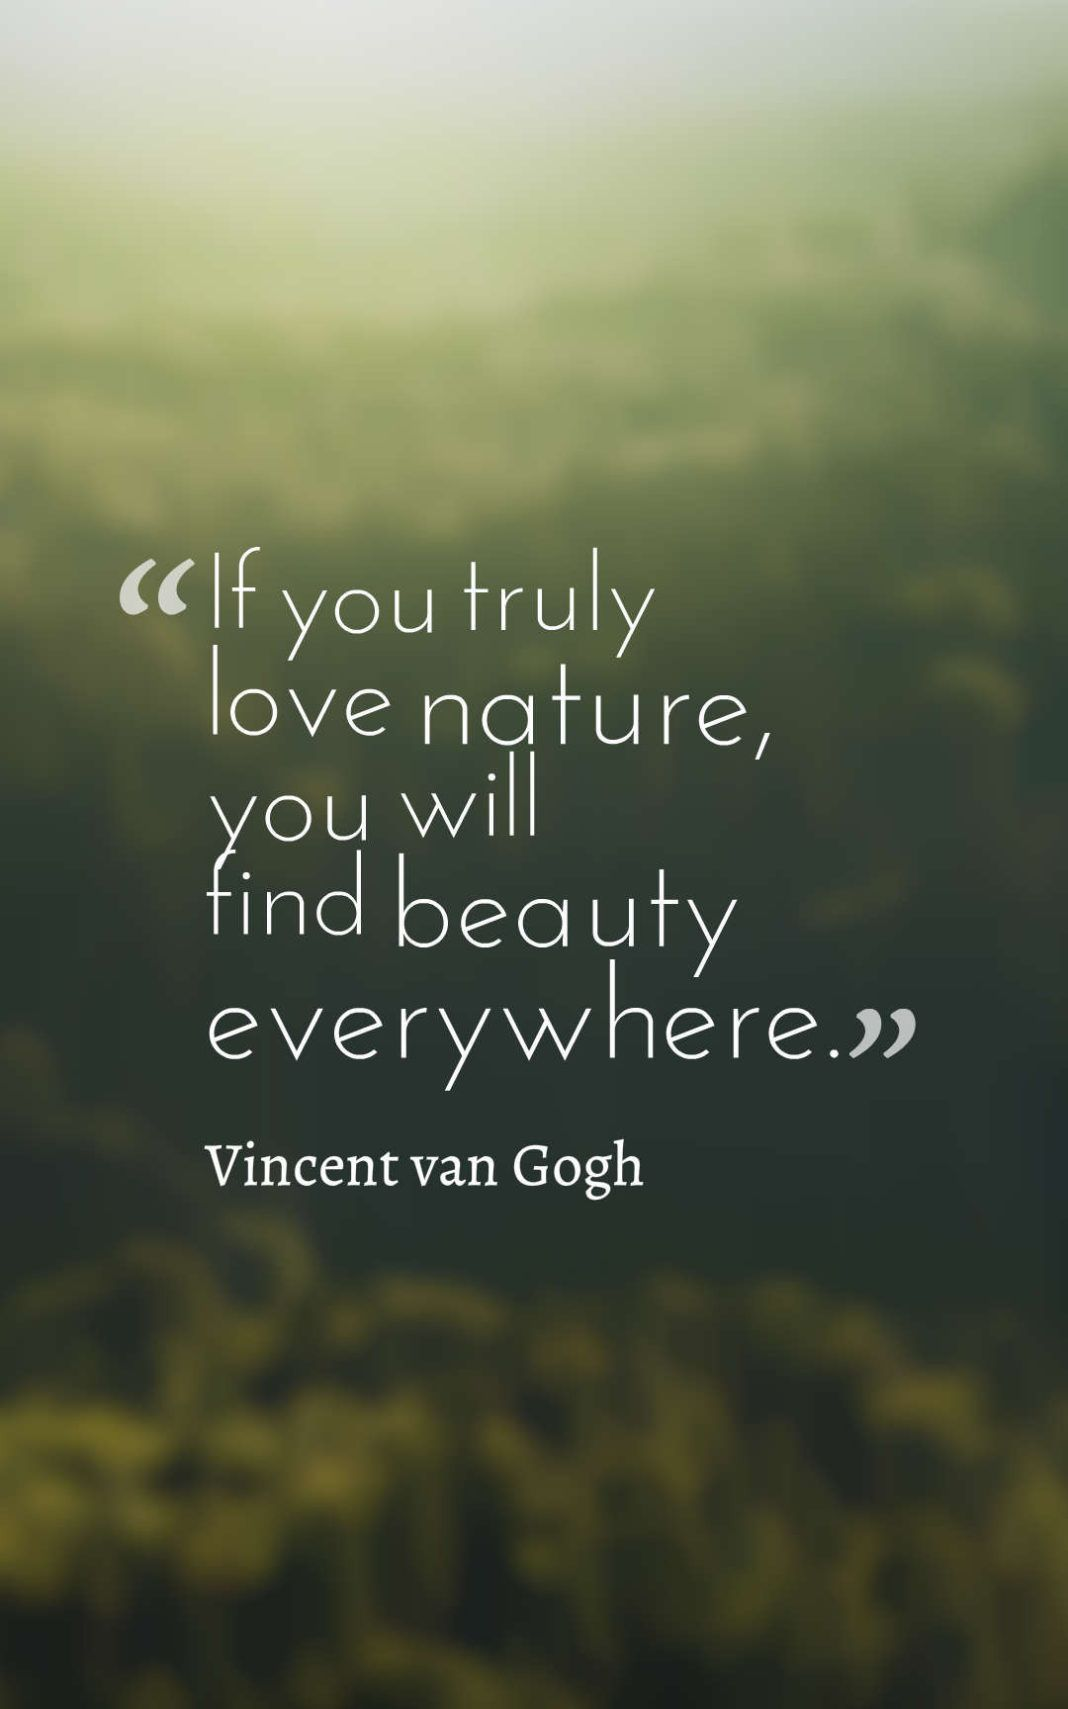 25 Best Nature Quotes To Inspire You Nature Quotes Nature Quotes Beautiful Nature Quotes Adventure